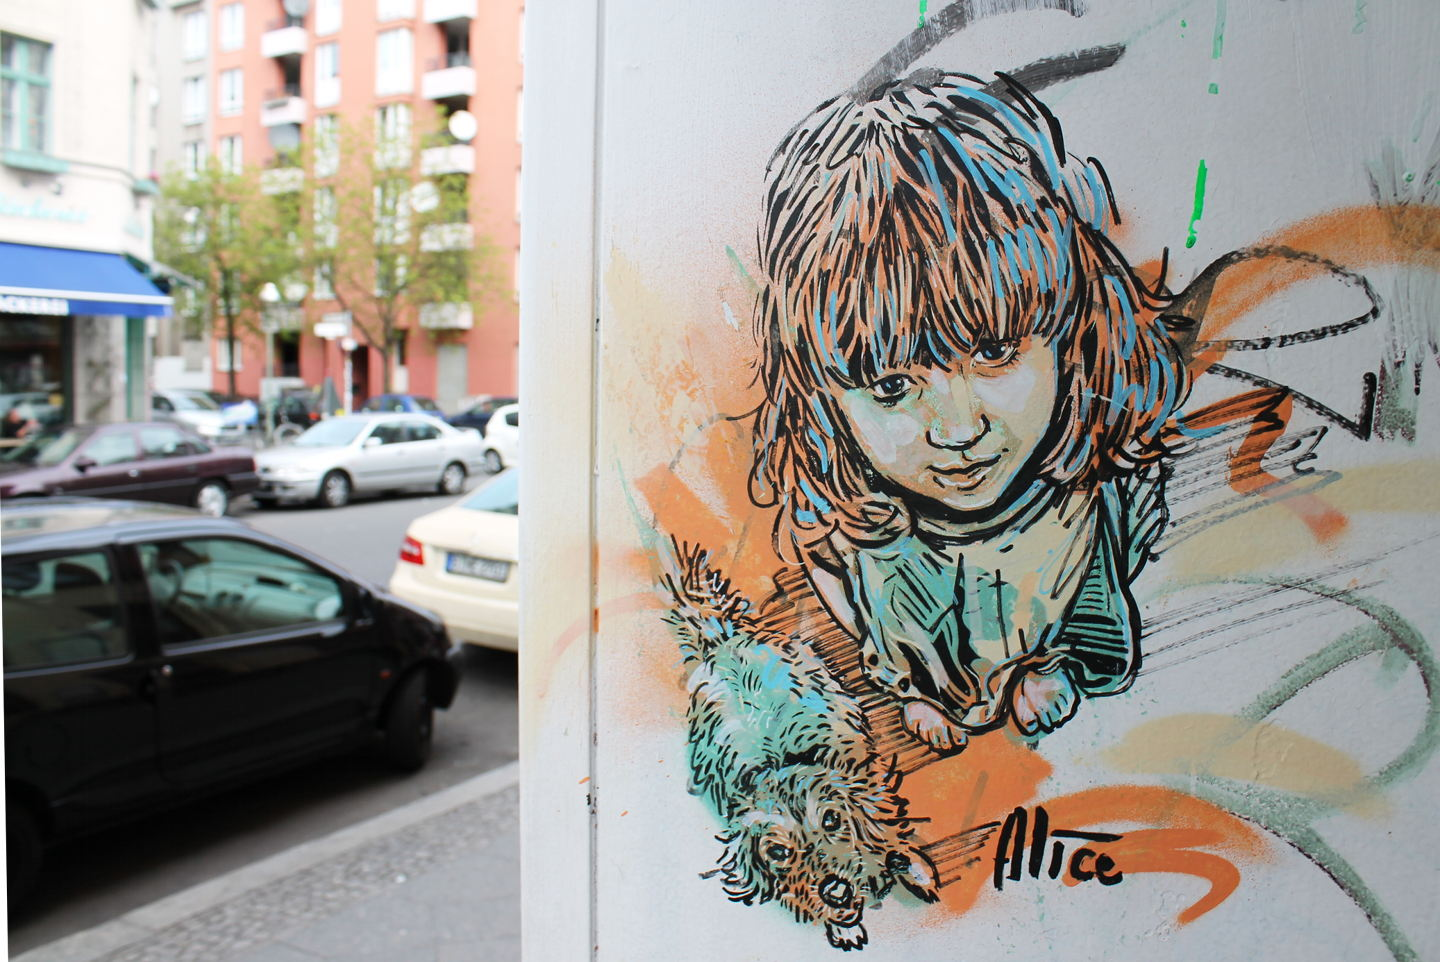 Street Art by AliCé aka. Alice Pasquini in Berlin